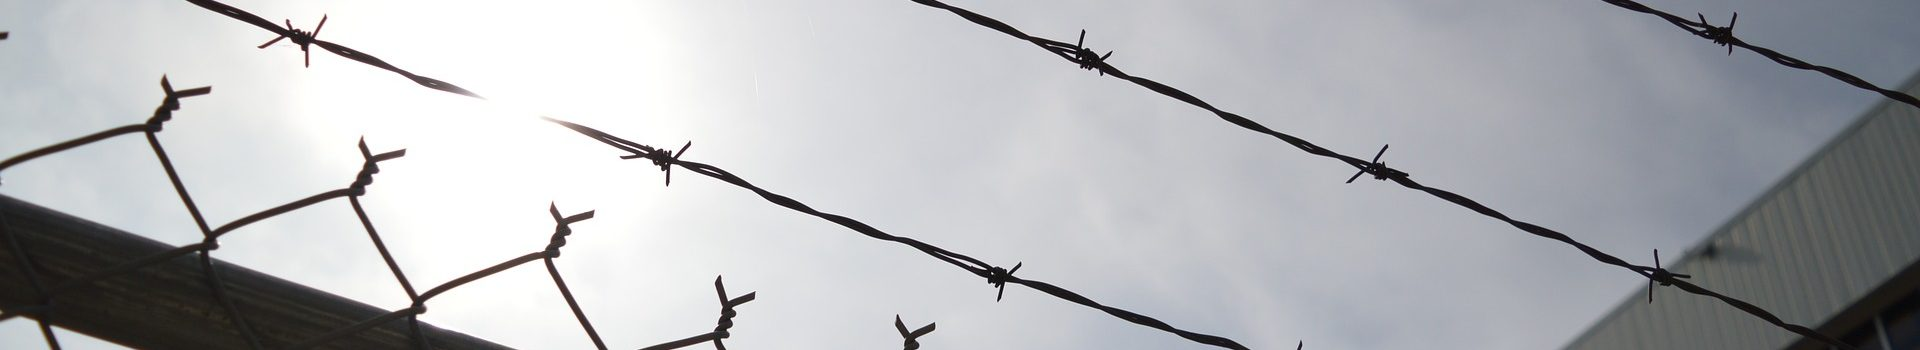 barbed-wire-960248_1920-1